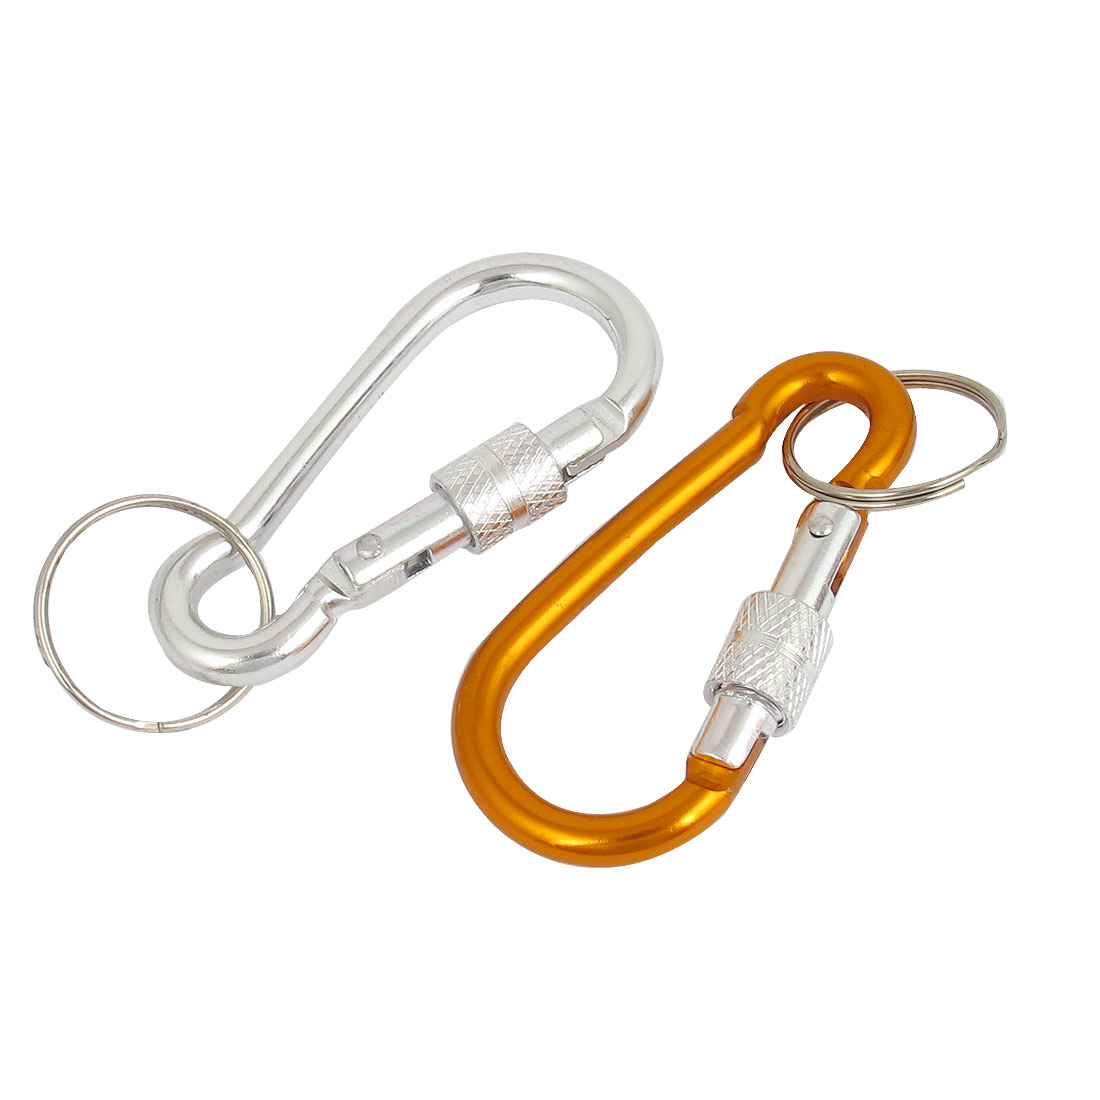 2pcs Silver Tone Gold Tone Metal Screw Locking Carabiner Clamp Spring Gate Clip Split Key Ring Chain